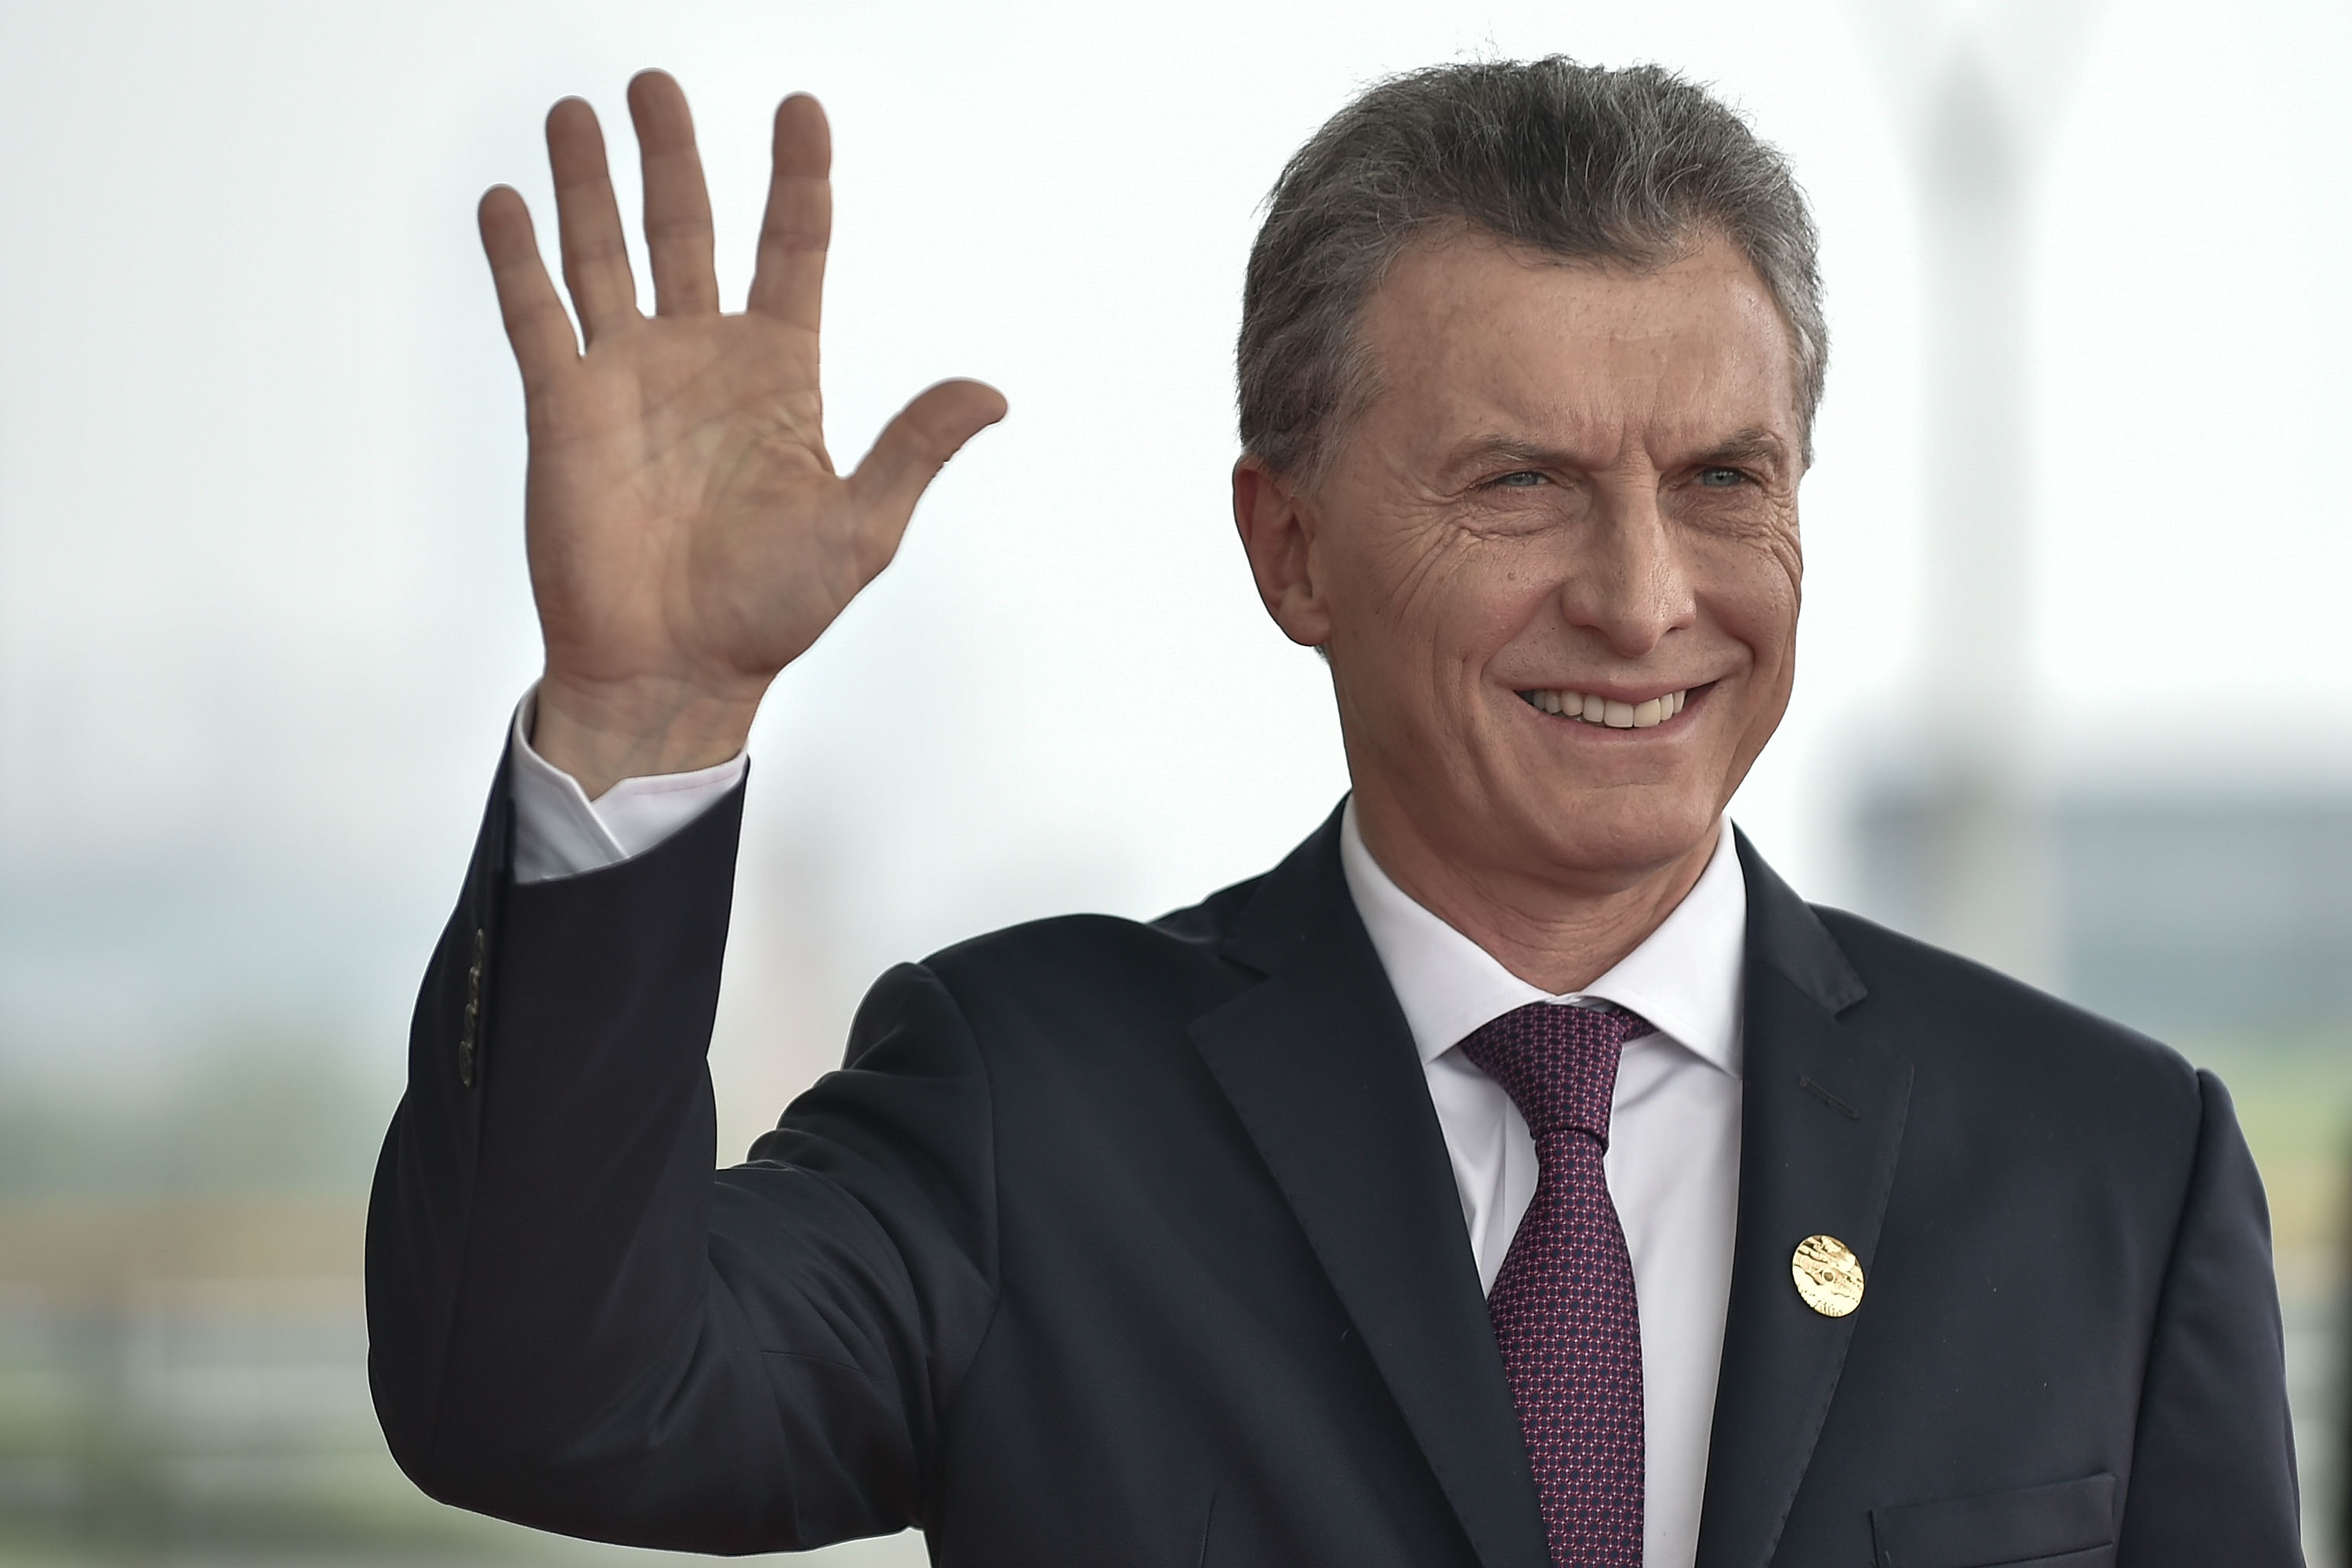 Argentina's president denies Trump pressed him on a private tower deal